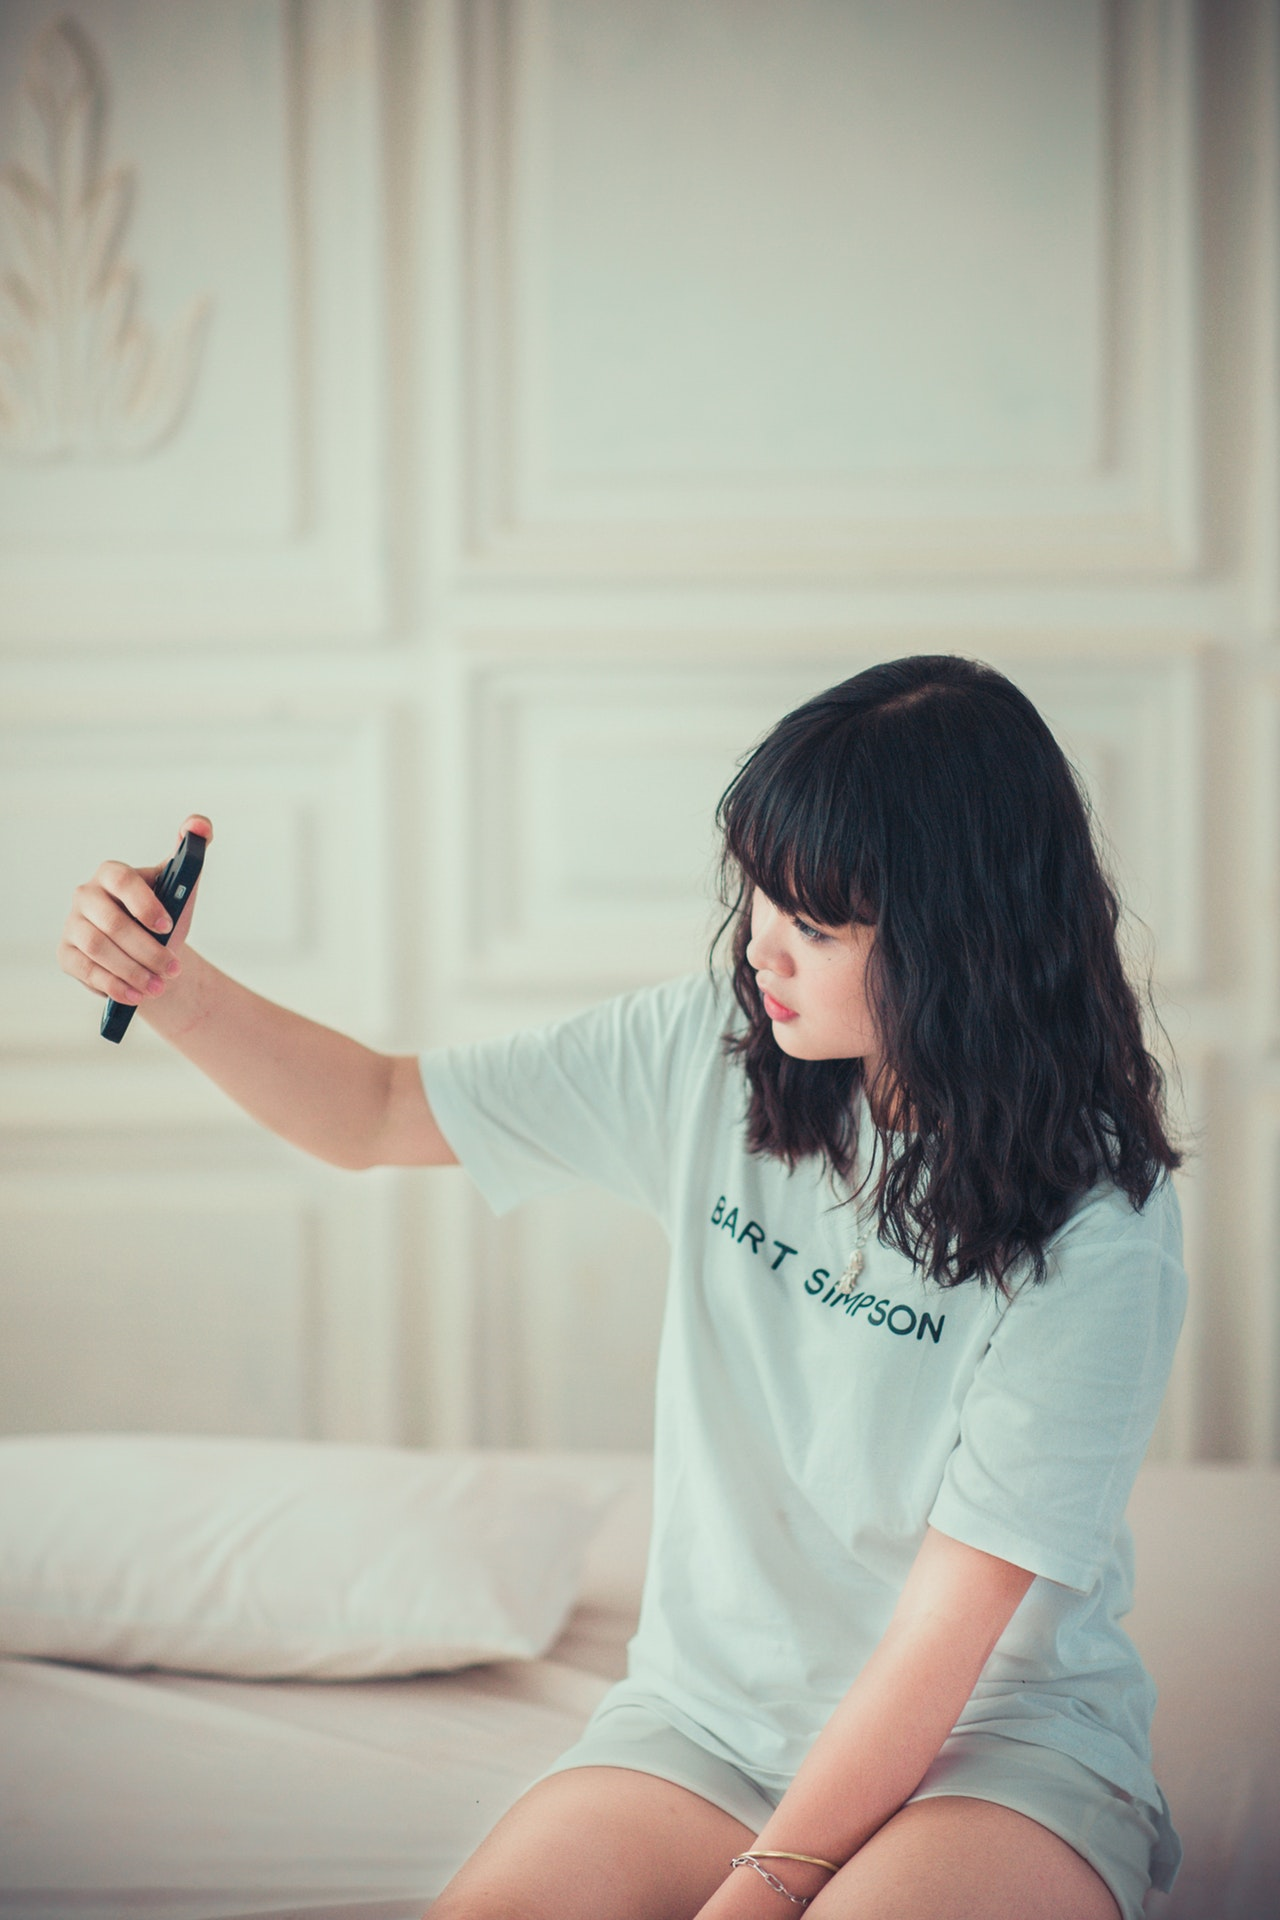 Image 2 clicking selfies is a mental disorder